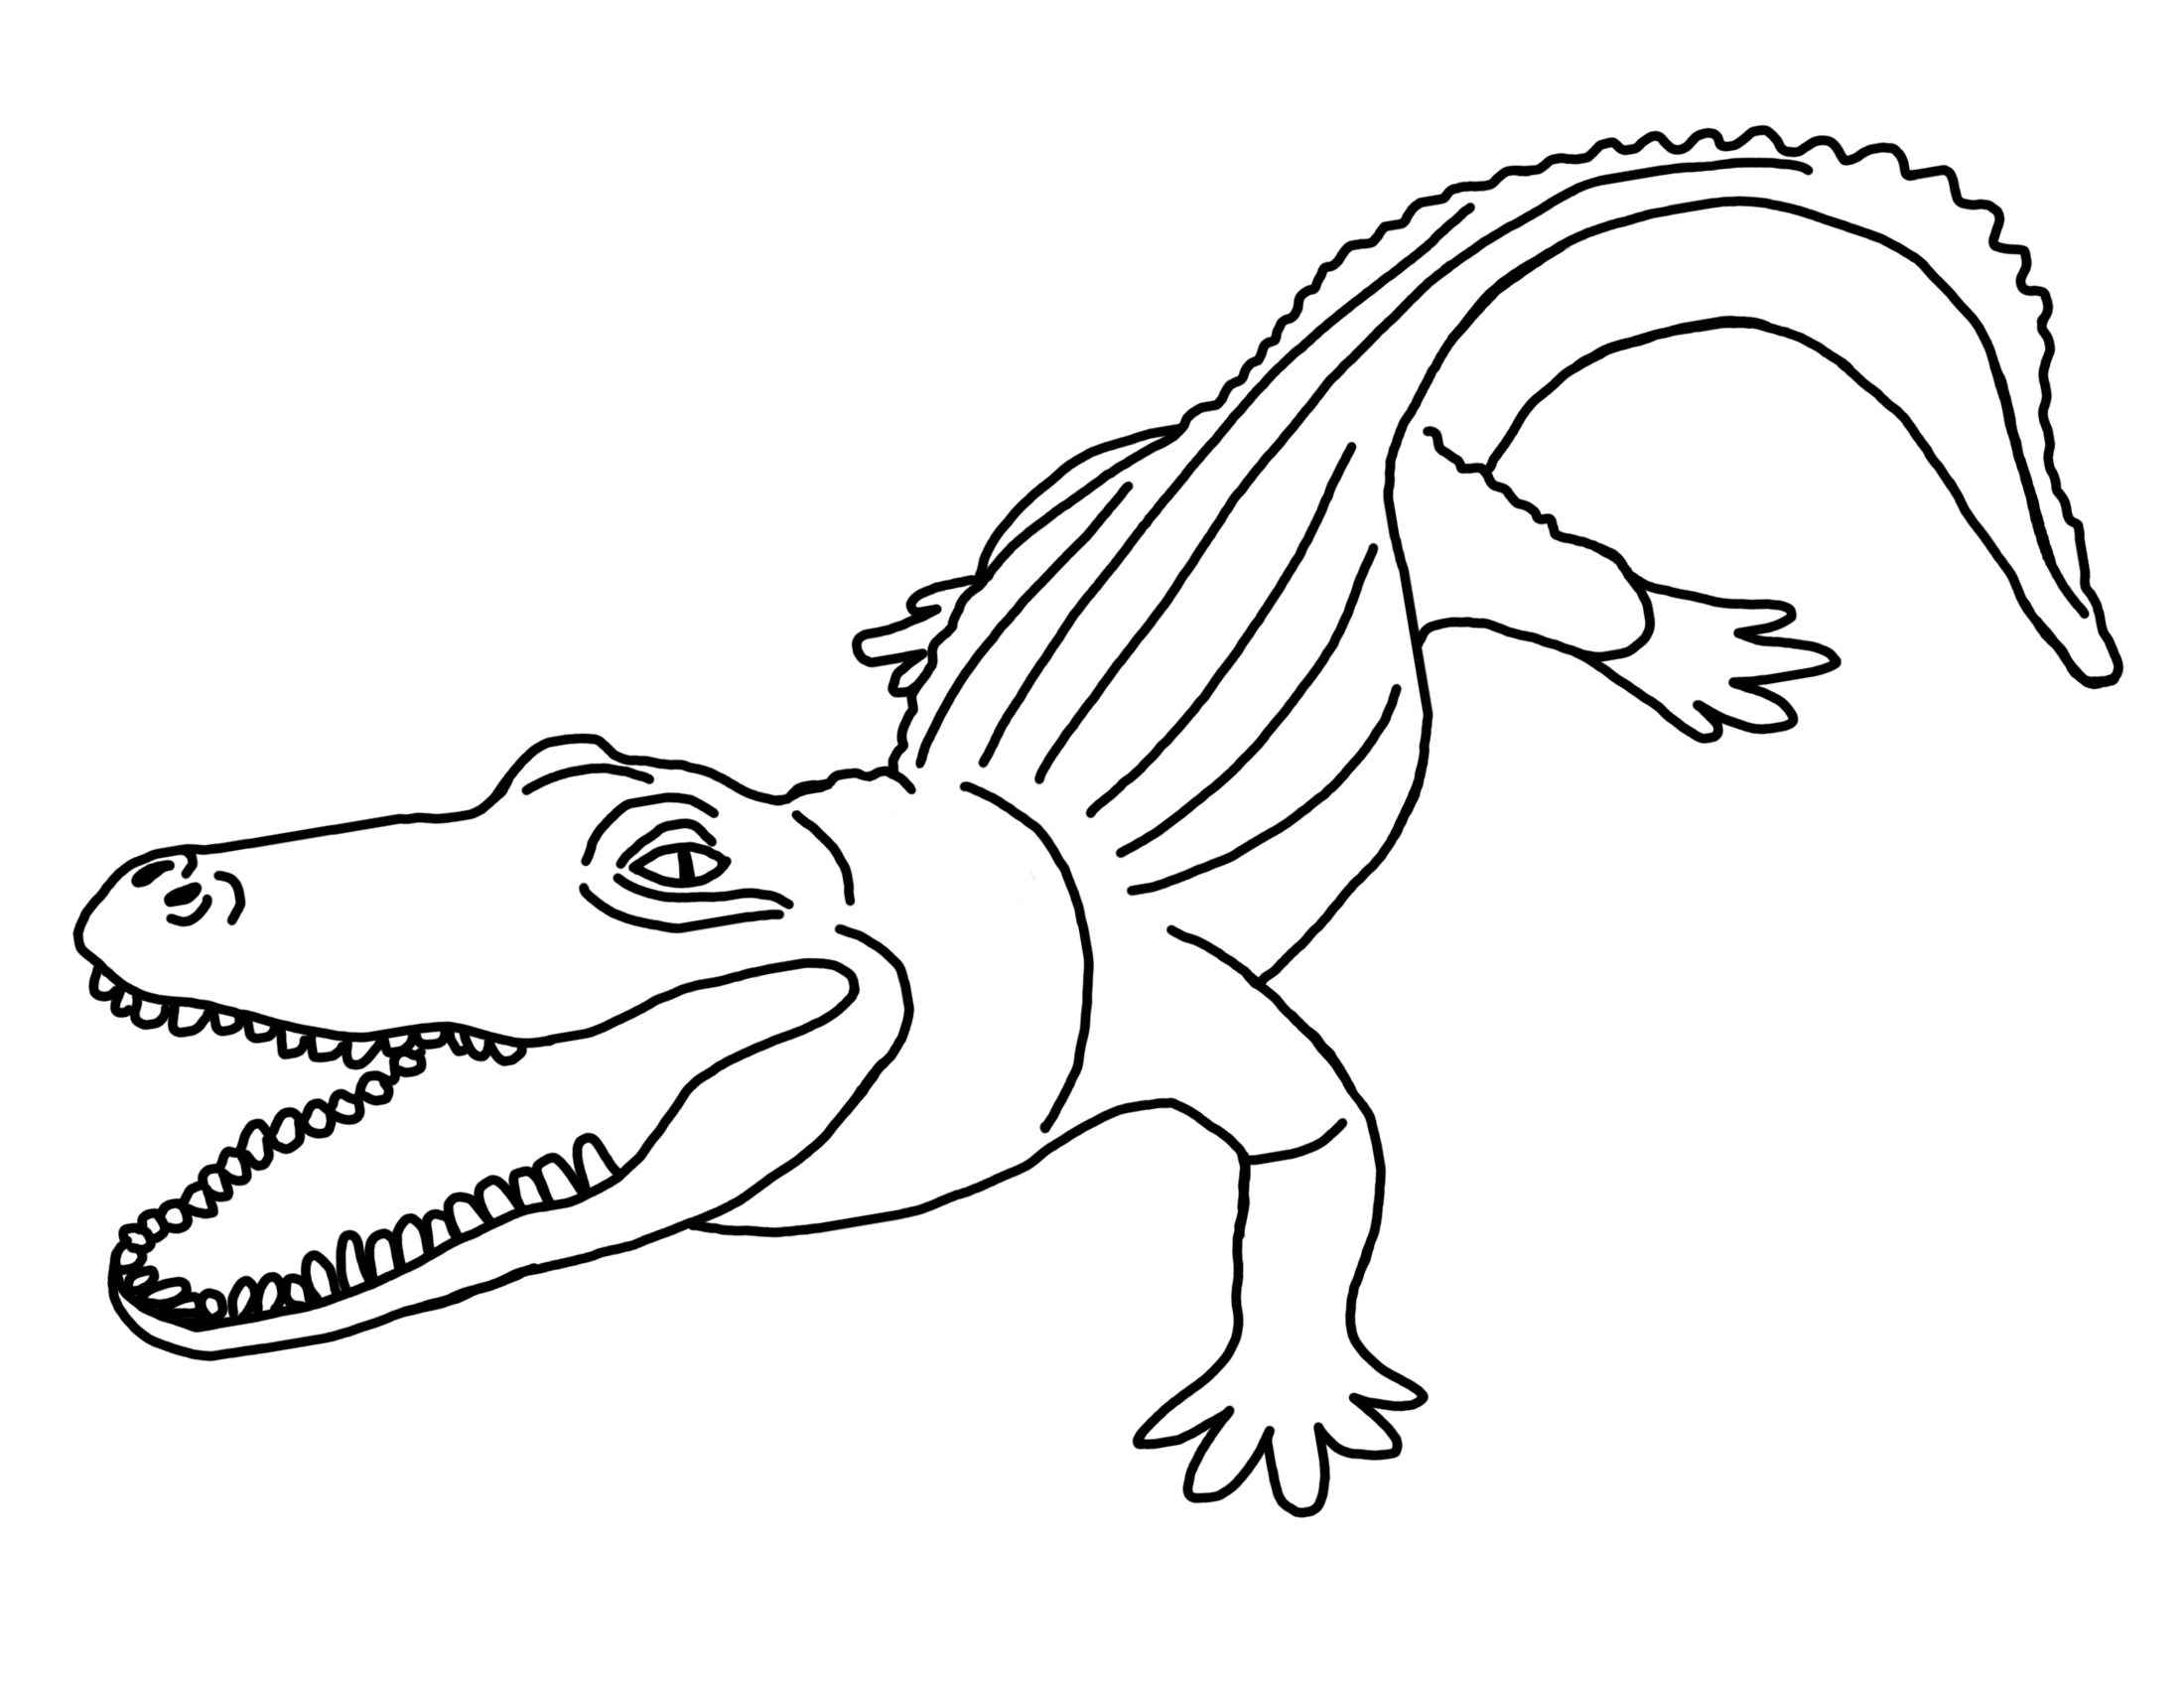 free printable pictures of alligators free printable alligator coloring pages for kids animal of pictures free printable alligators